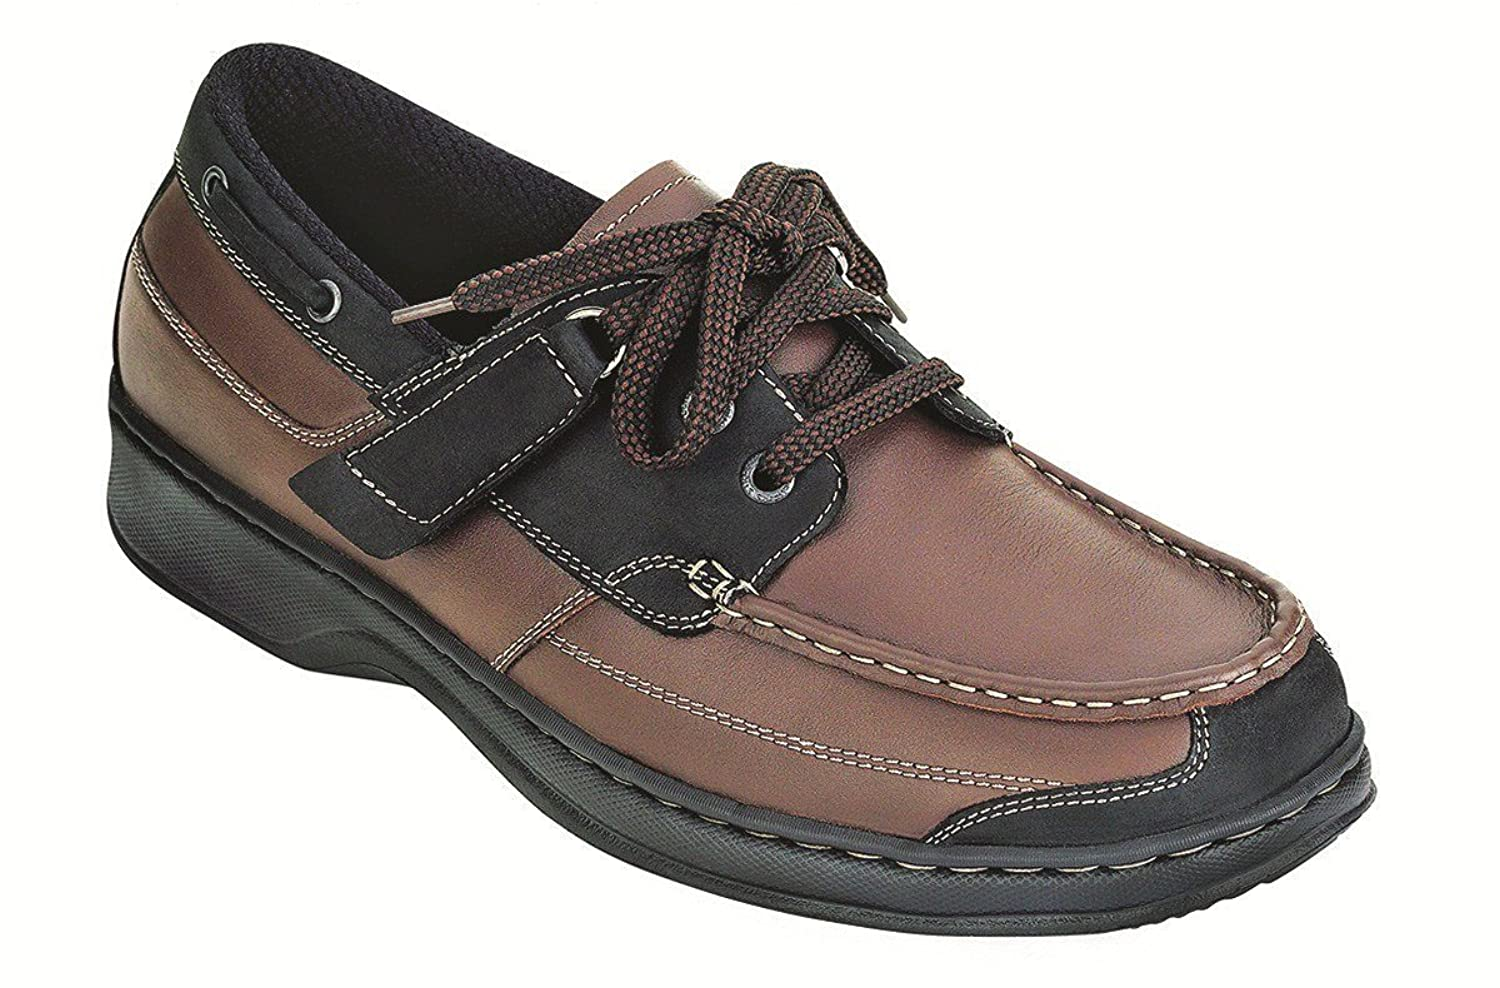 Orthofeet 422 Men's Comfort Diabetic Therapeutic Extra Depth Shoe -8.5 X-Wide (4E) Brown Two Tone Lace US Men